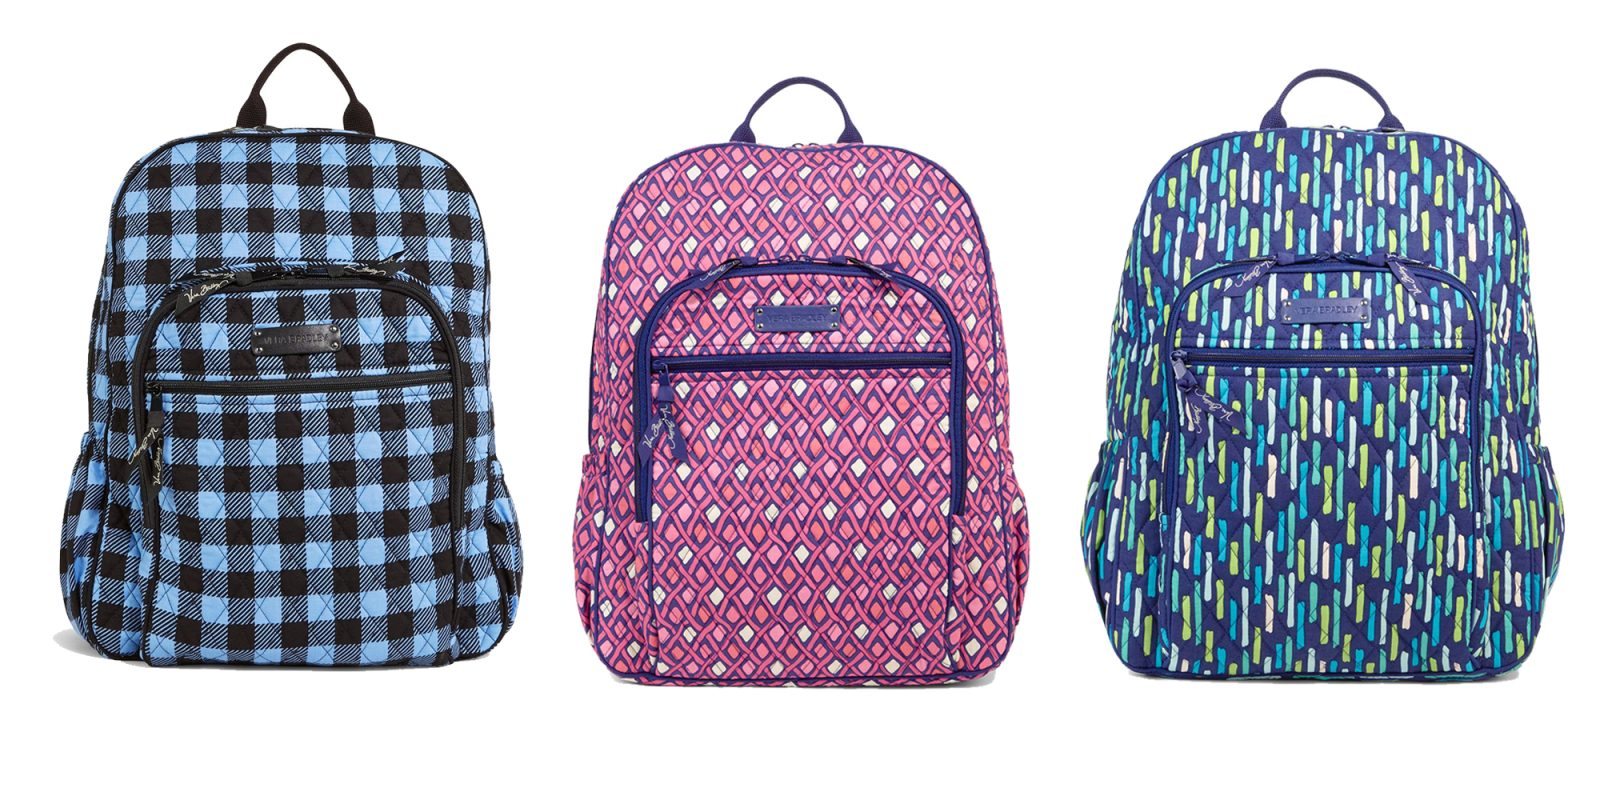 Show off your true colors with Vera Bradley s Campus Backpacks for  30  shipped (Reg.  50) 3919aa699b083